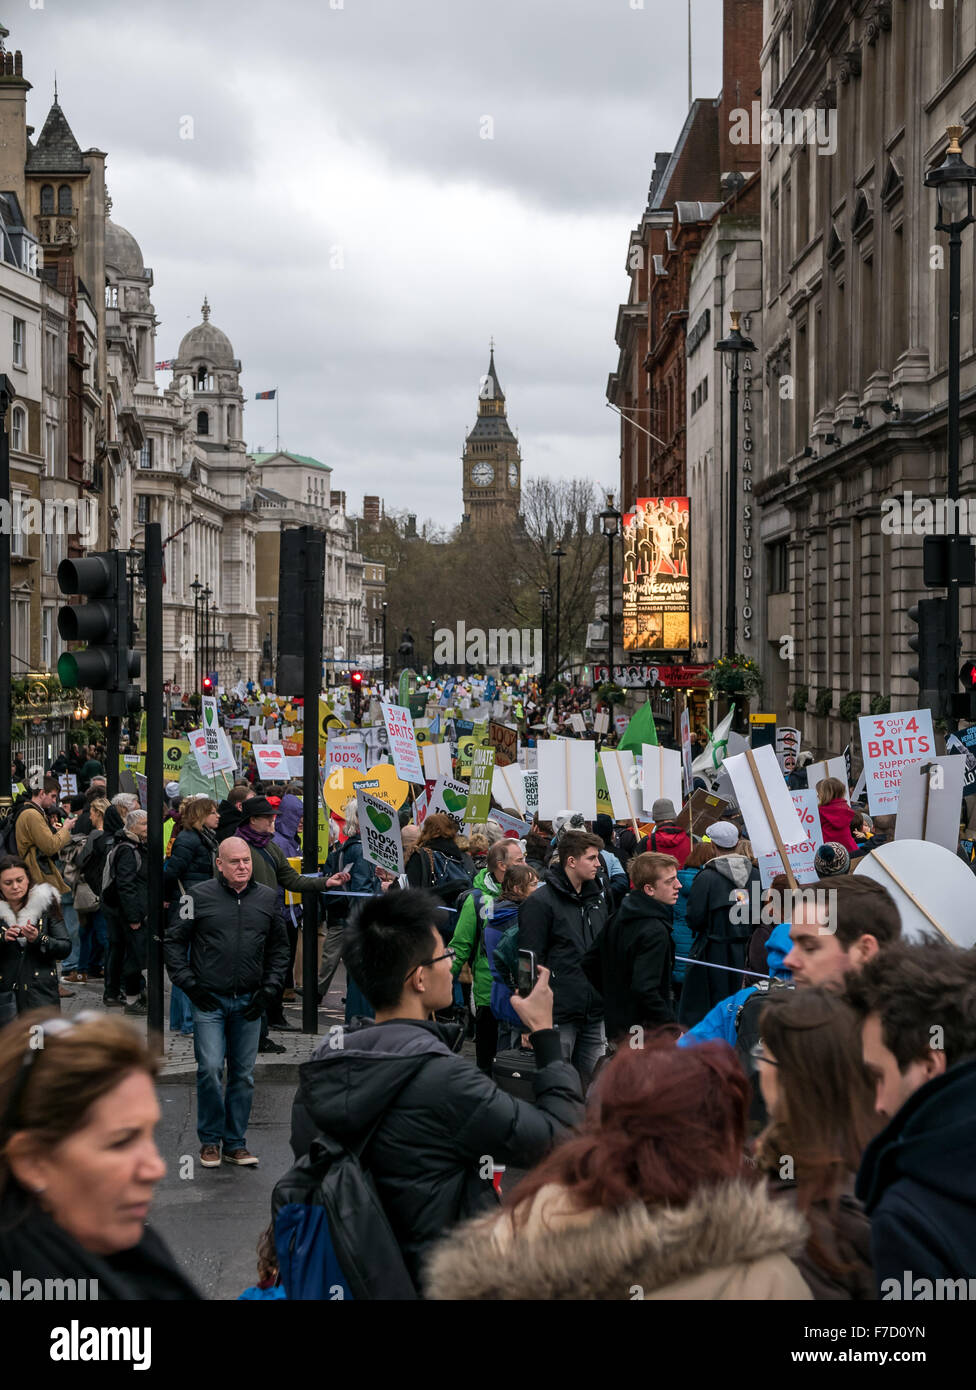 London, UK. 29th November, 2015. Police estimate 15,000 people attended the climate change ralley in central London. - Stock Image